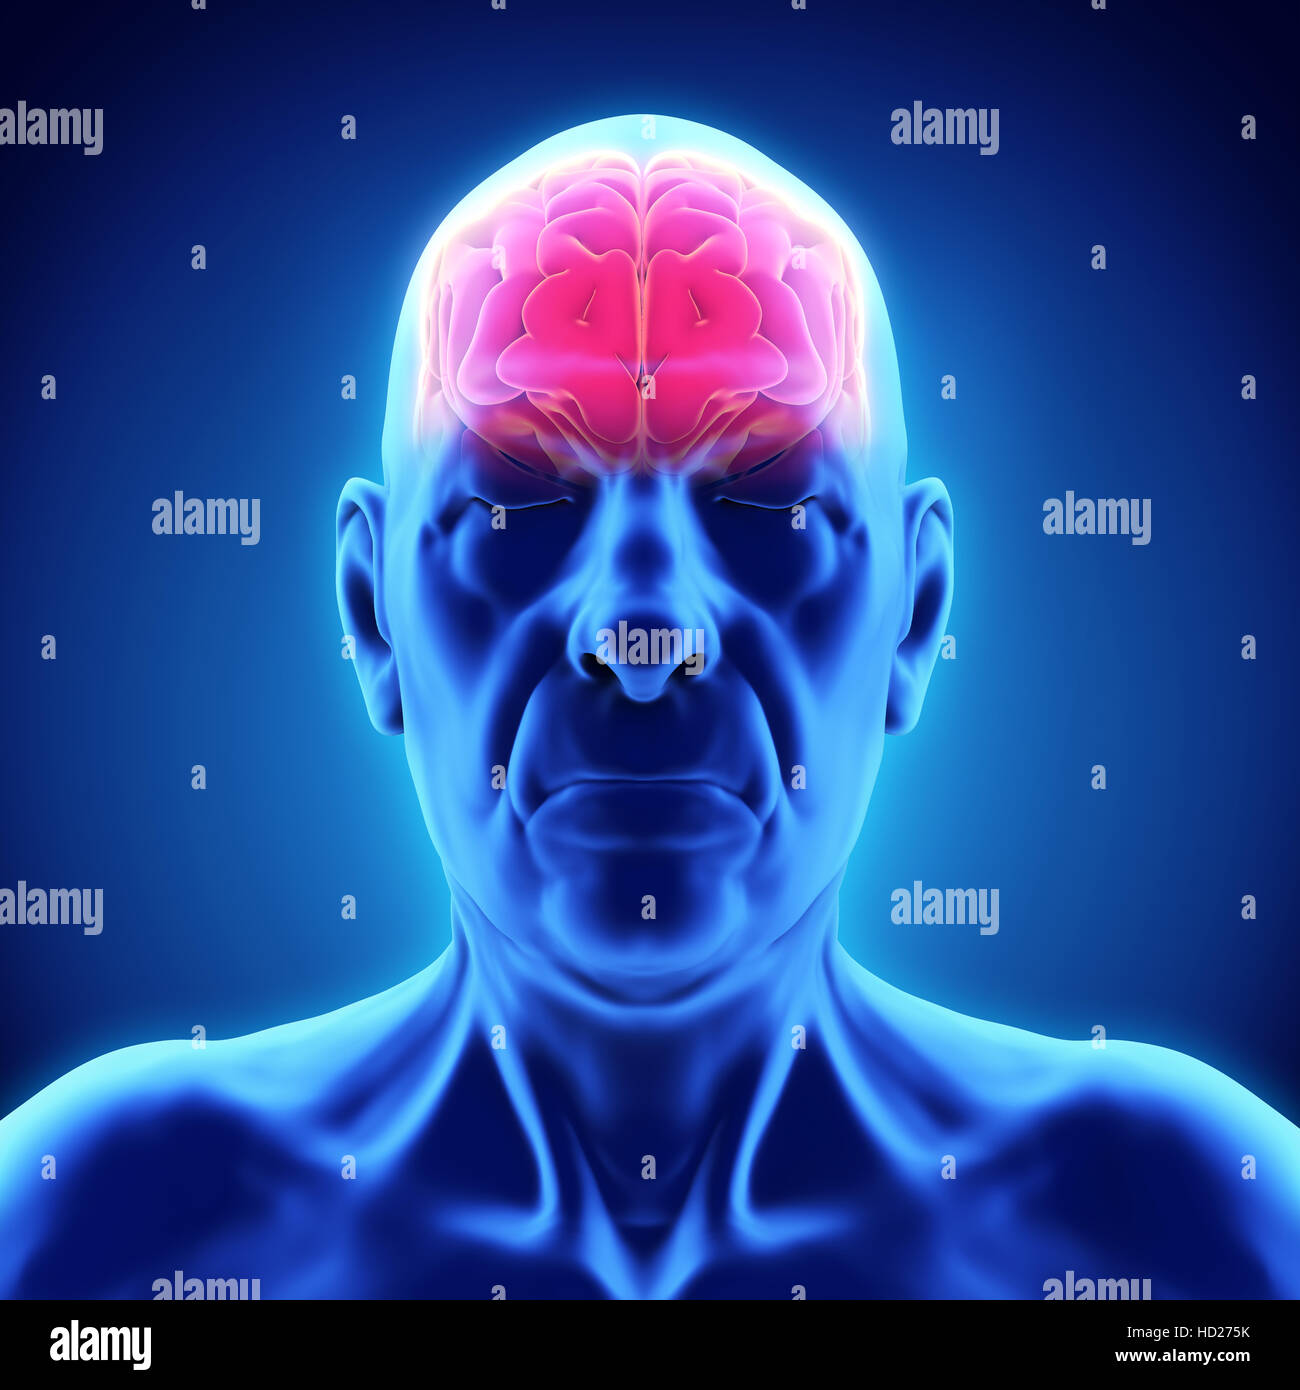 Mri Brain Tumor Stock Photos & Mri Brain Tumor Stock Images - Alamy